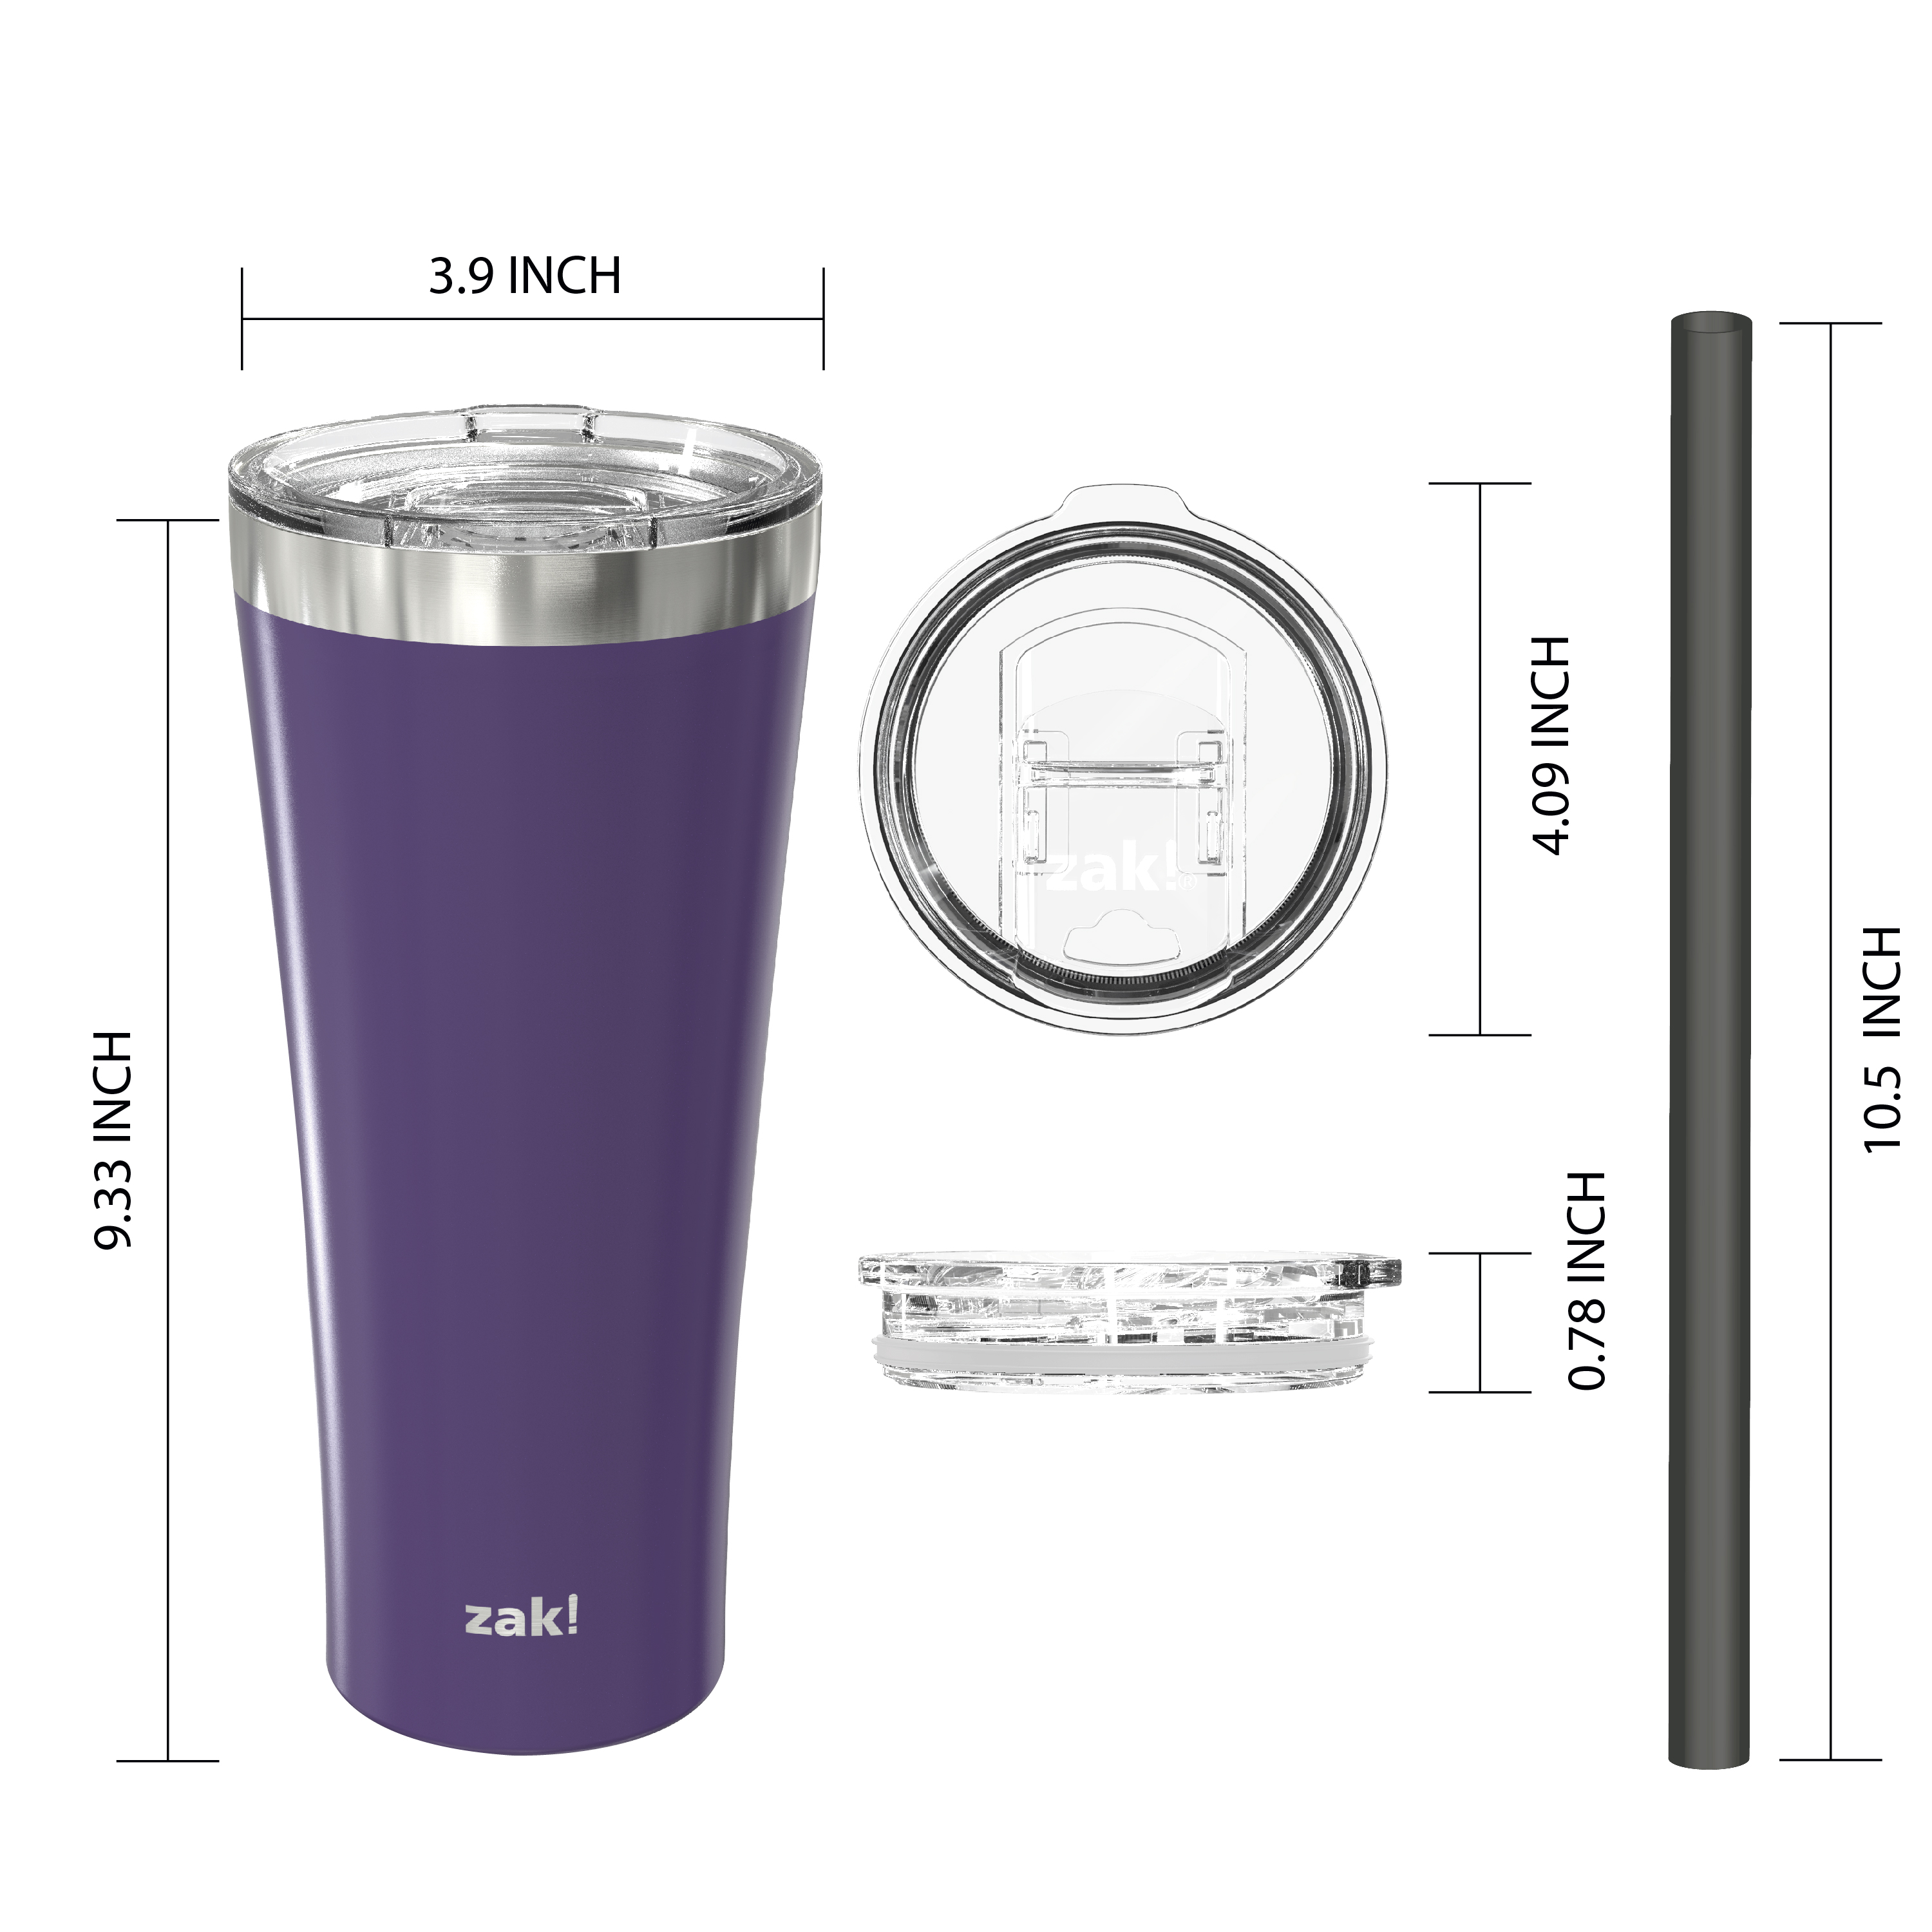 Alpine 30 ounce Stainless Steel Vacuum Insulated Tumbler with Straw, Viola slideshow image 2